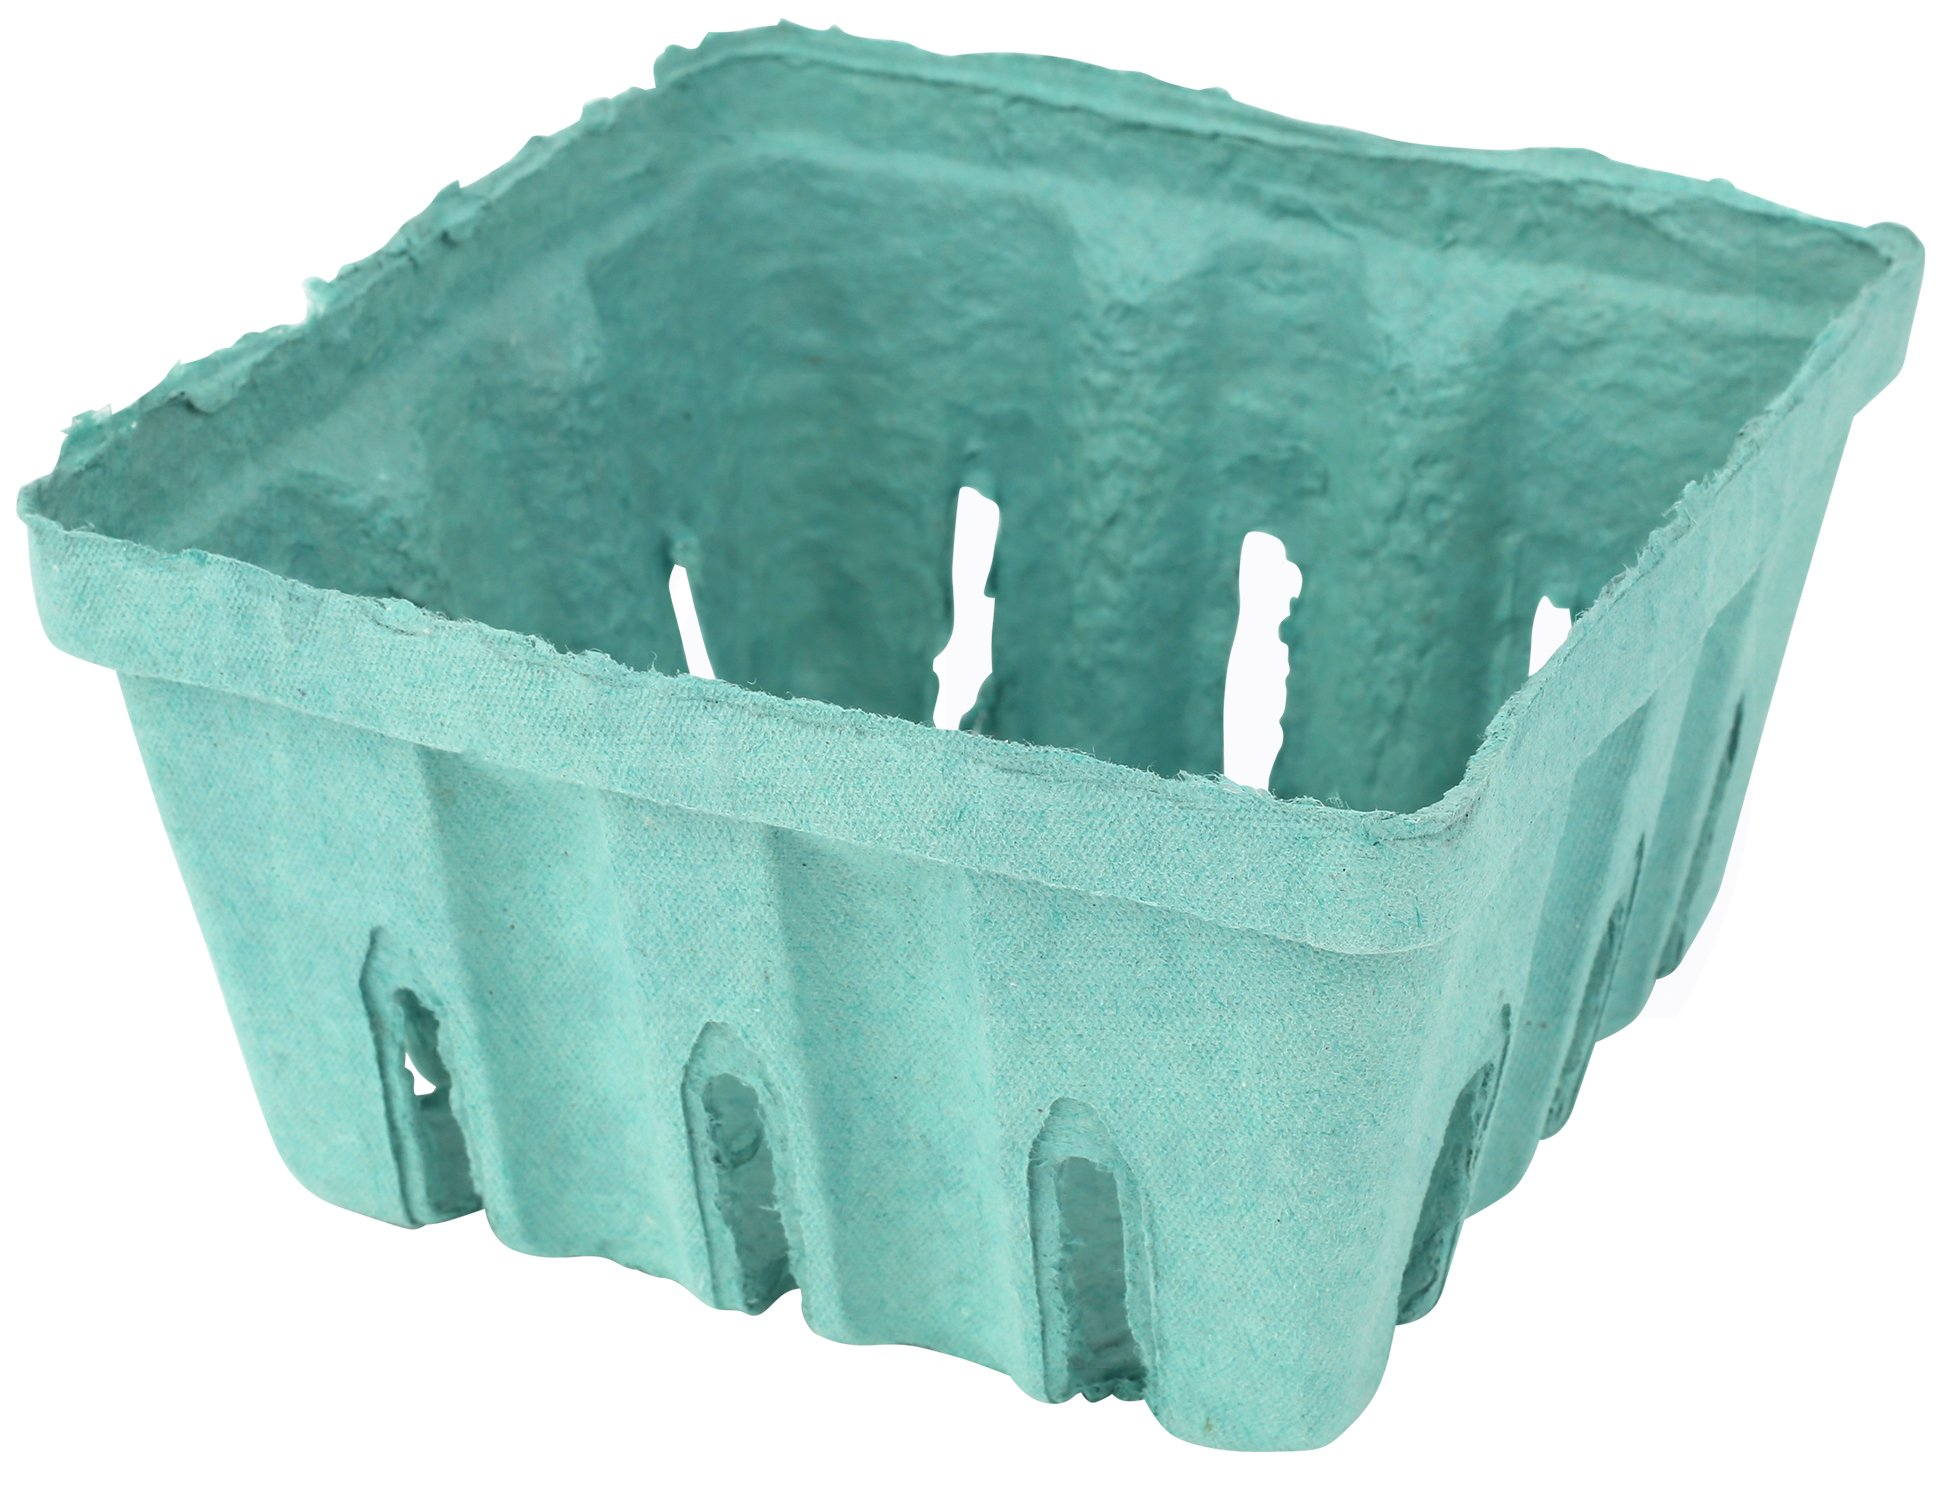 Green Molded Pulp Fiber Berry/Produce Vented 1/2 Pint Basket/Container by MT Products - (15 Pieces)